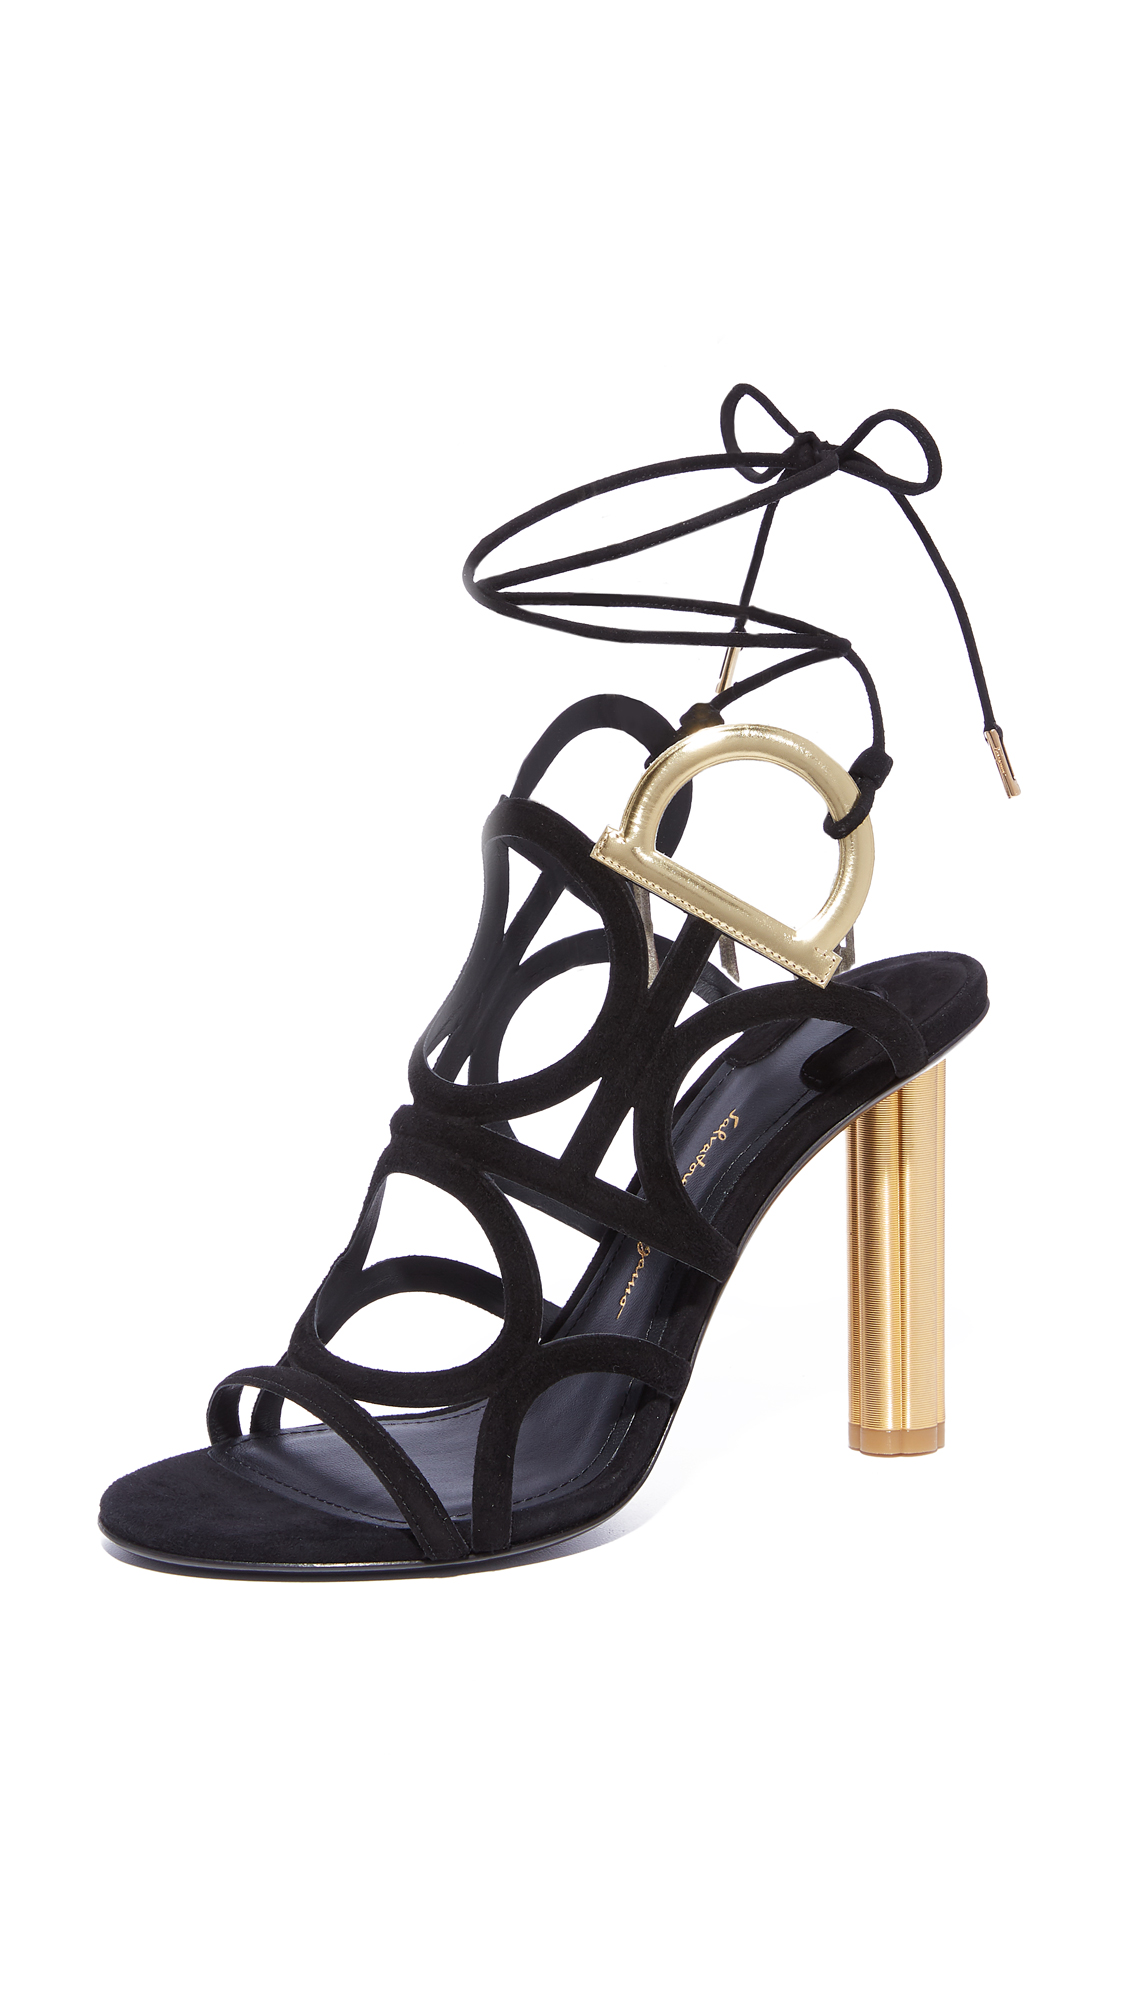 Salvatore Ferragamo Vinci Wrap Sandals - Nero